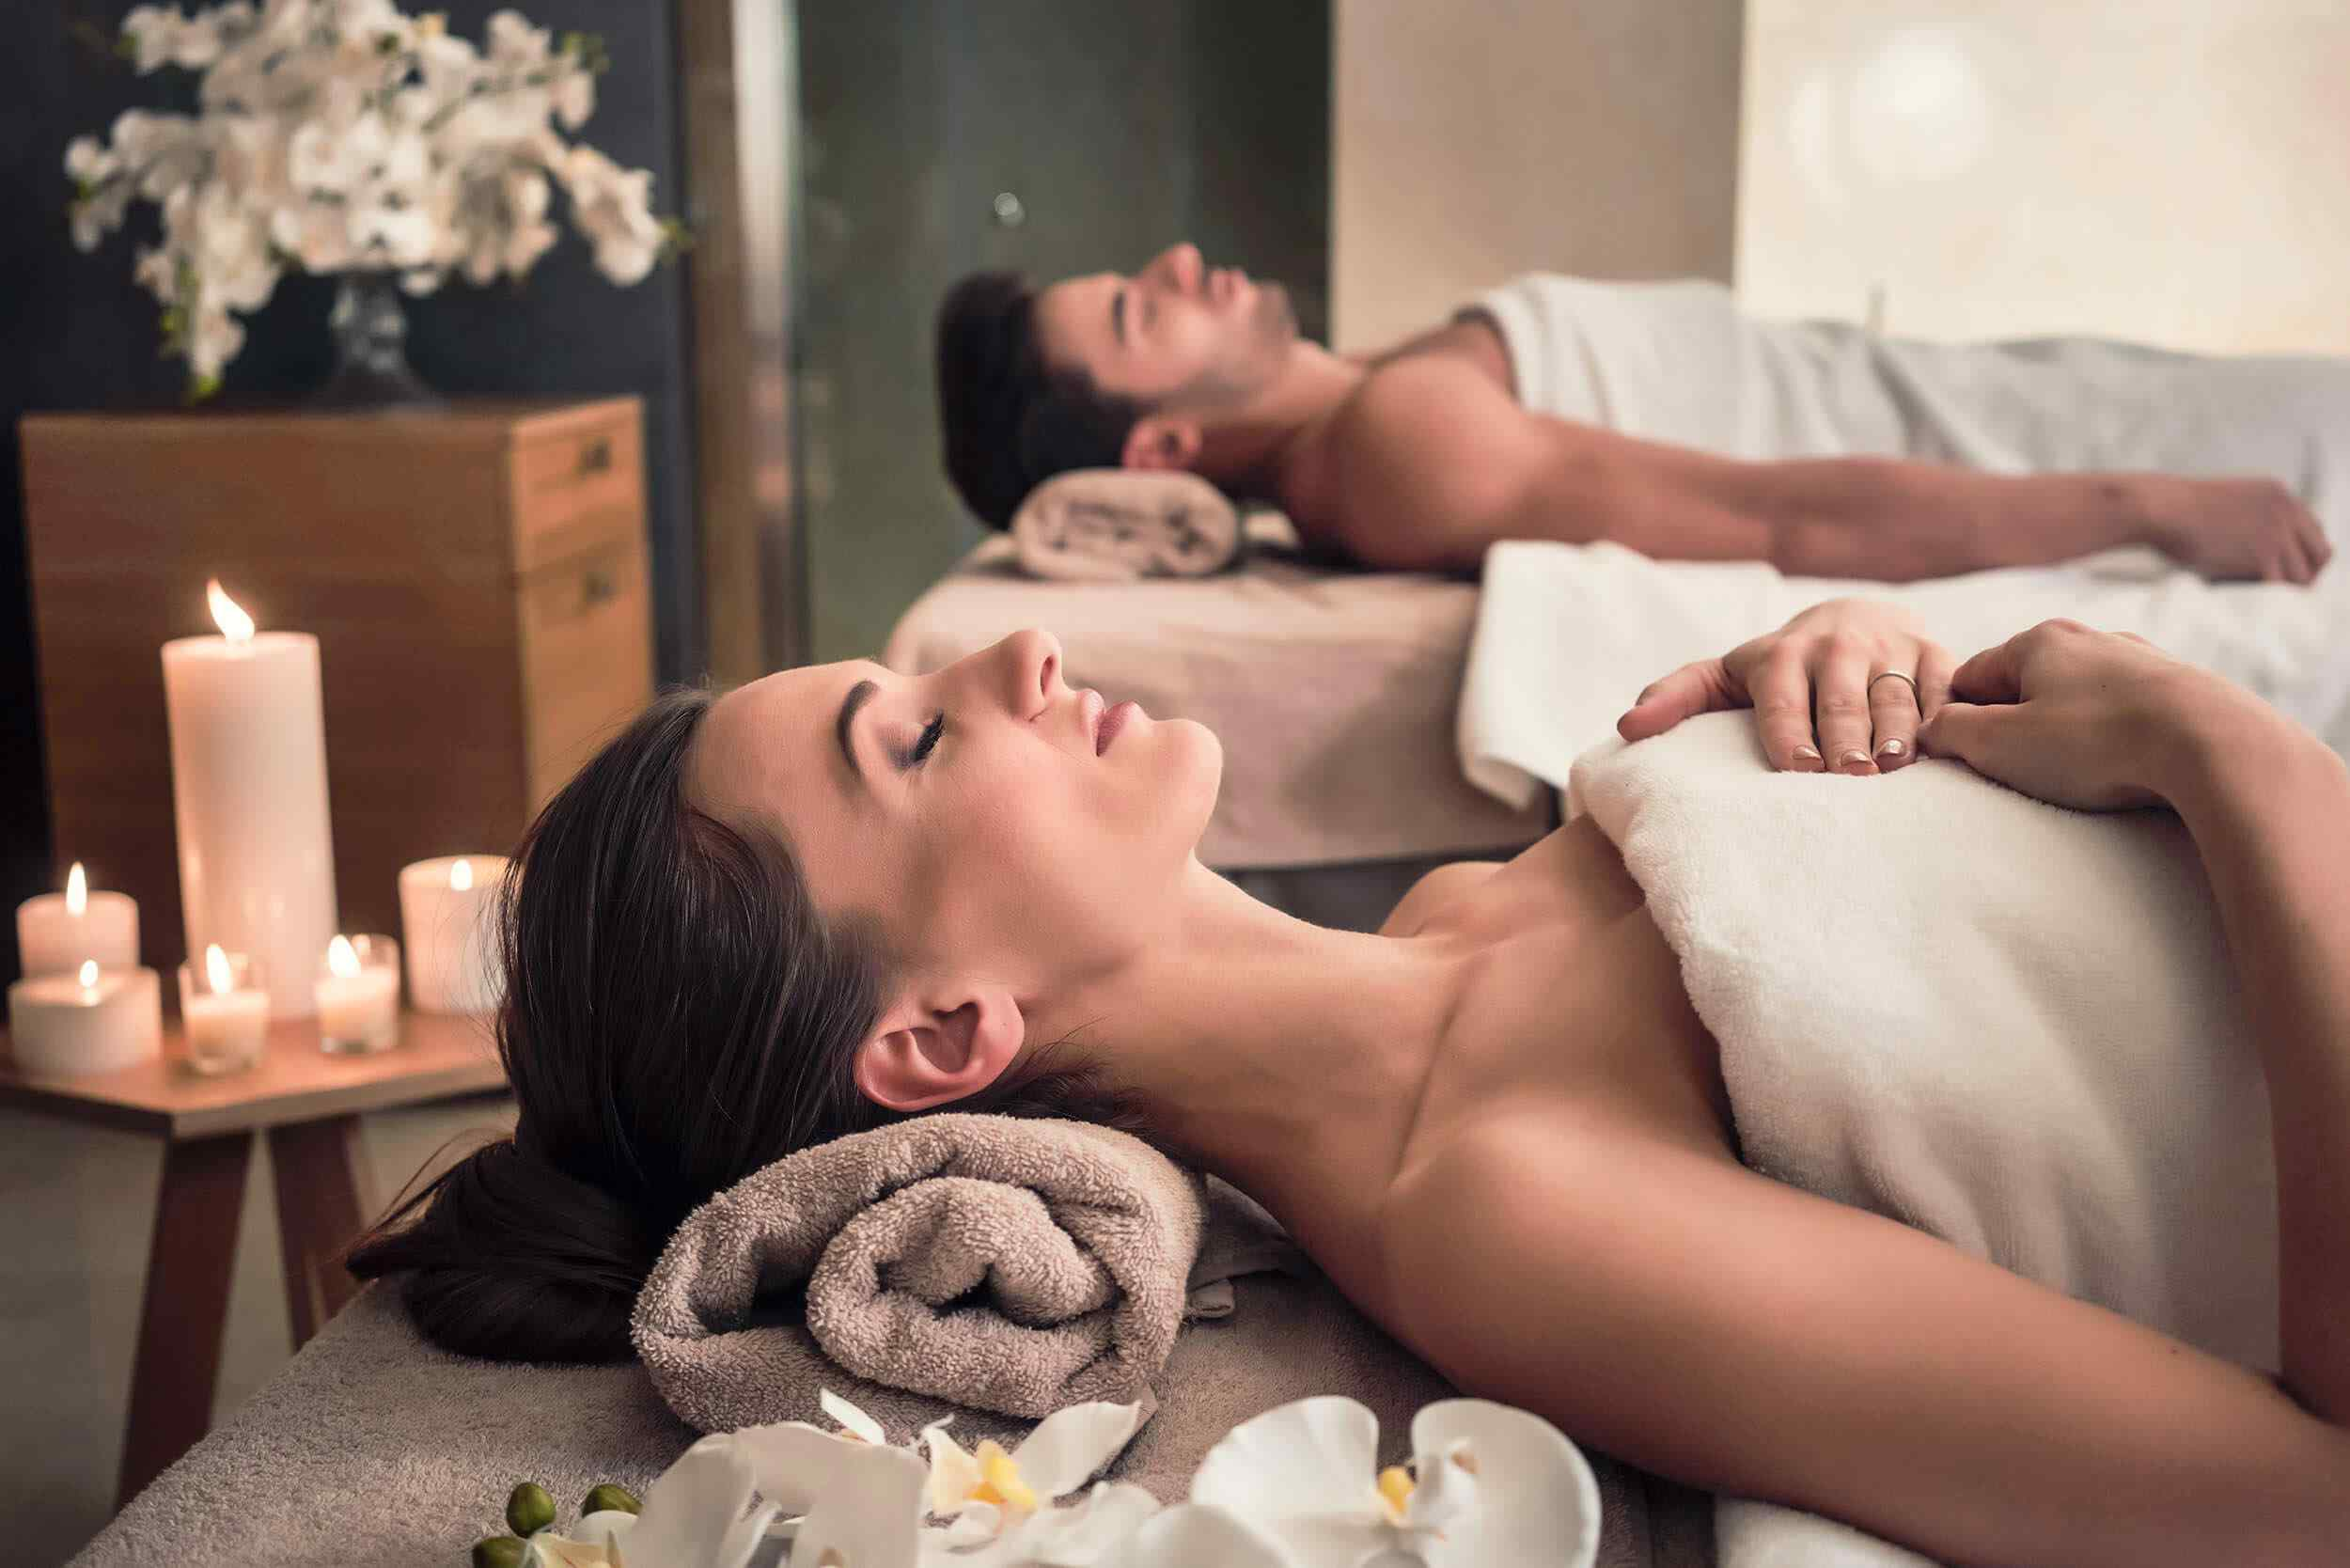 https://zenyu.com.au/wp-content/uploads/2018/10/spa-treatment-7.jpg